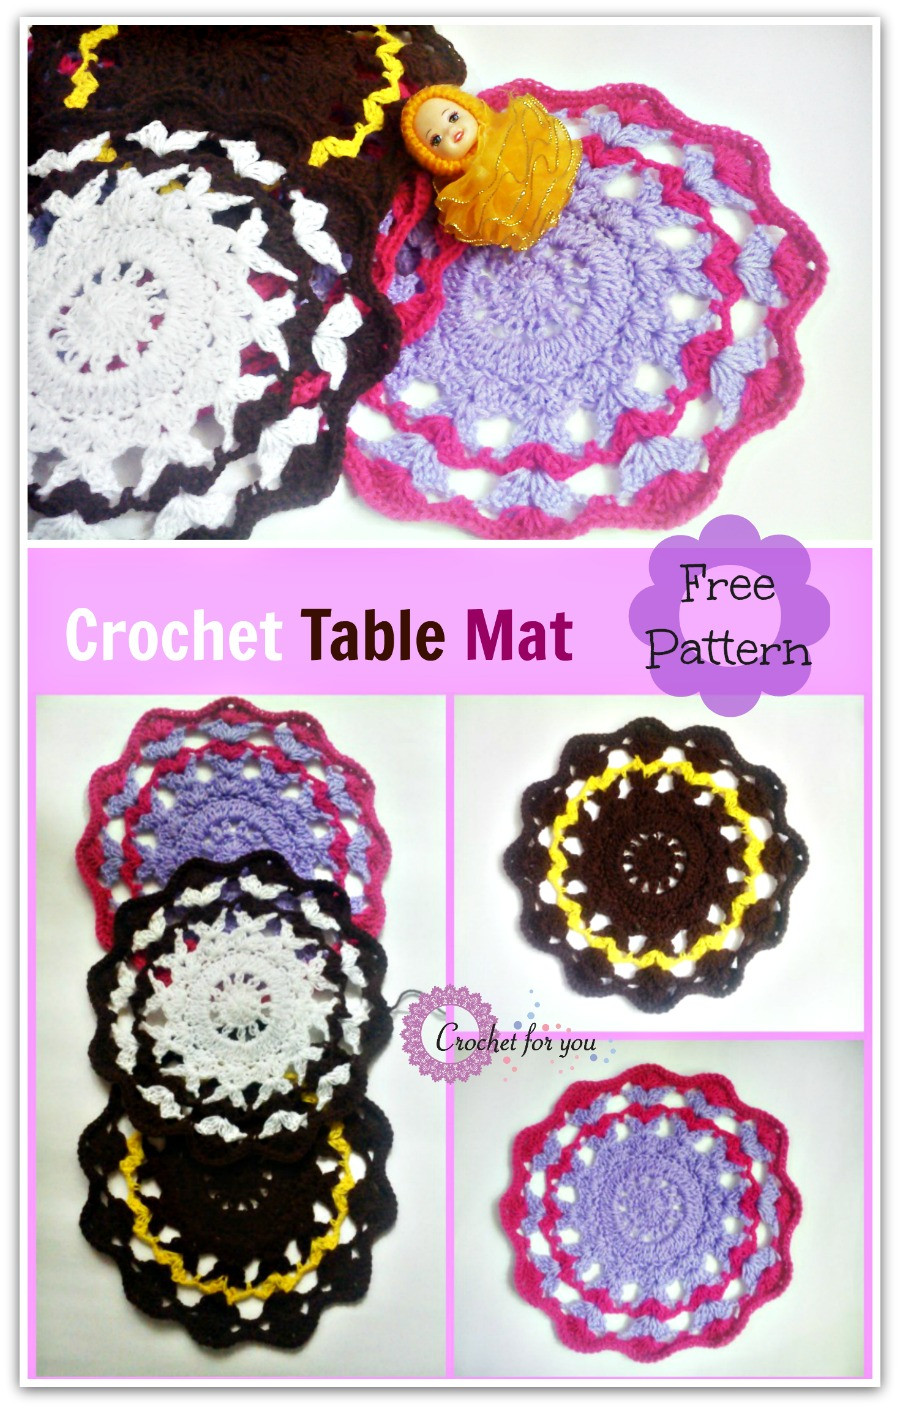 Best Of Crochet Table Mat Free Pattern Crochet for You Crochet Table Mat Of Gorgeous 47 Ideas Crochet Table Mat